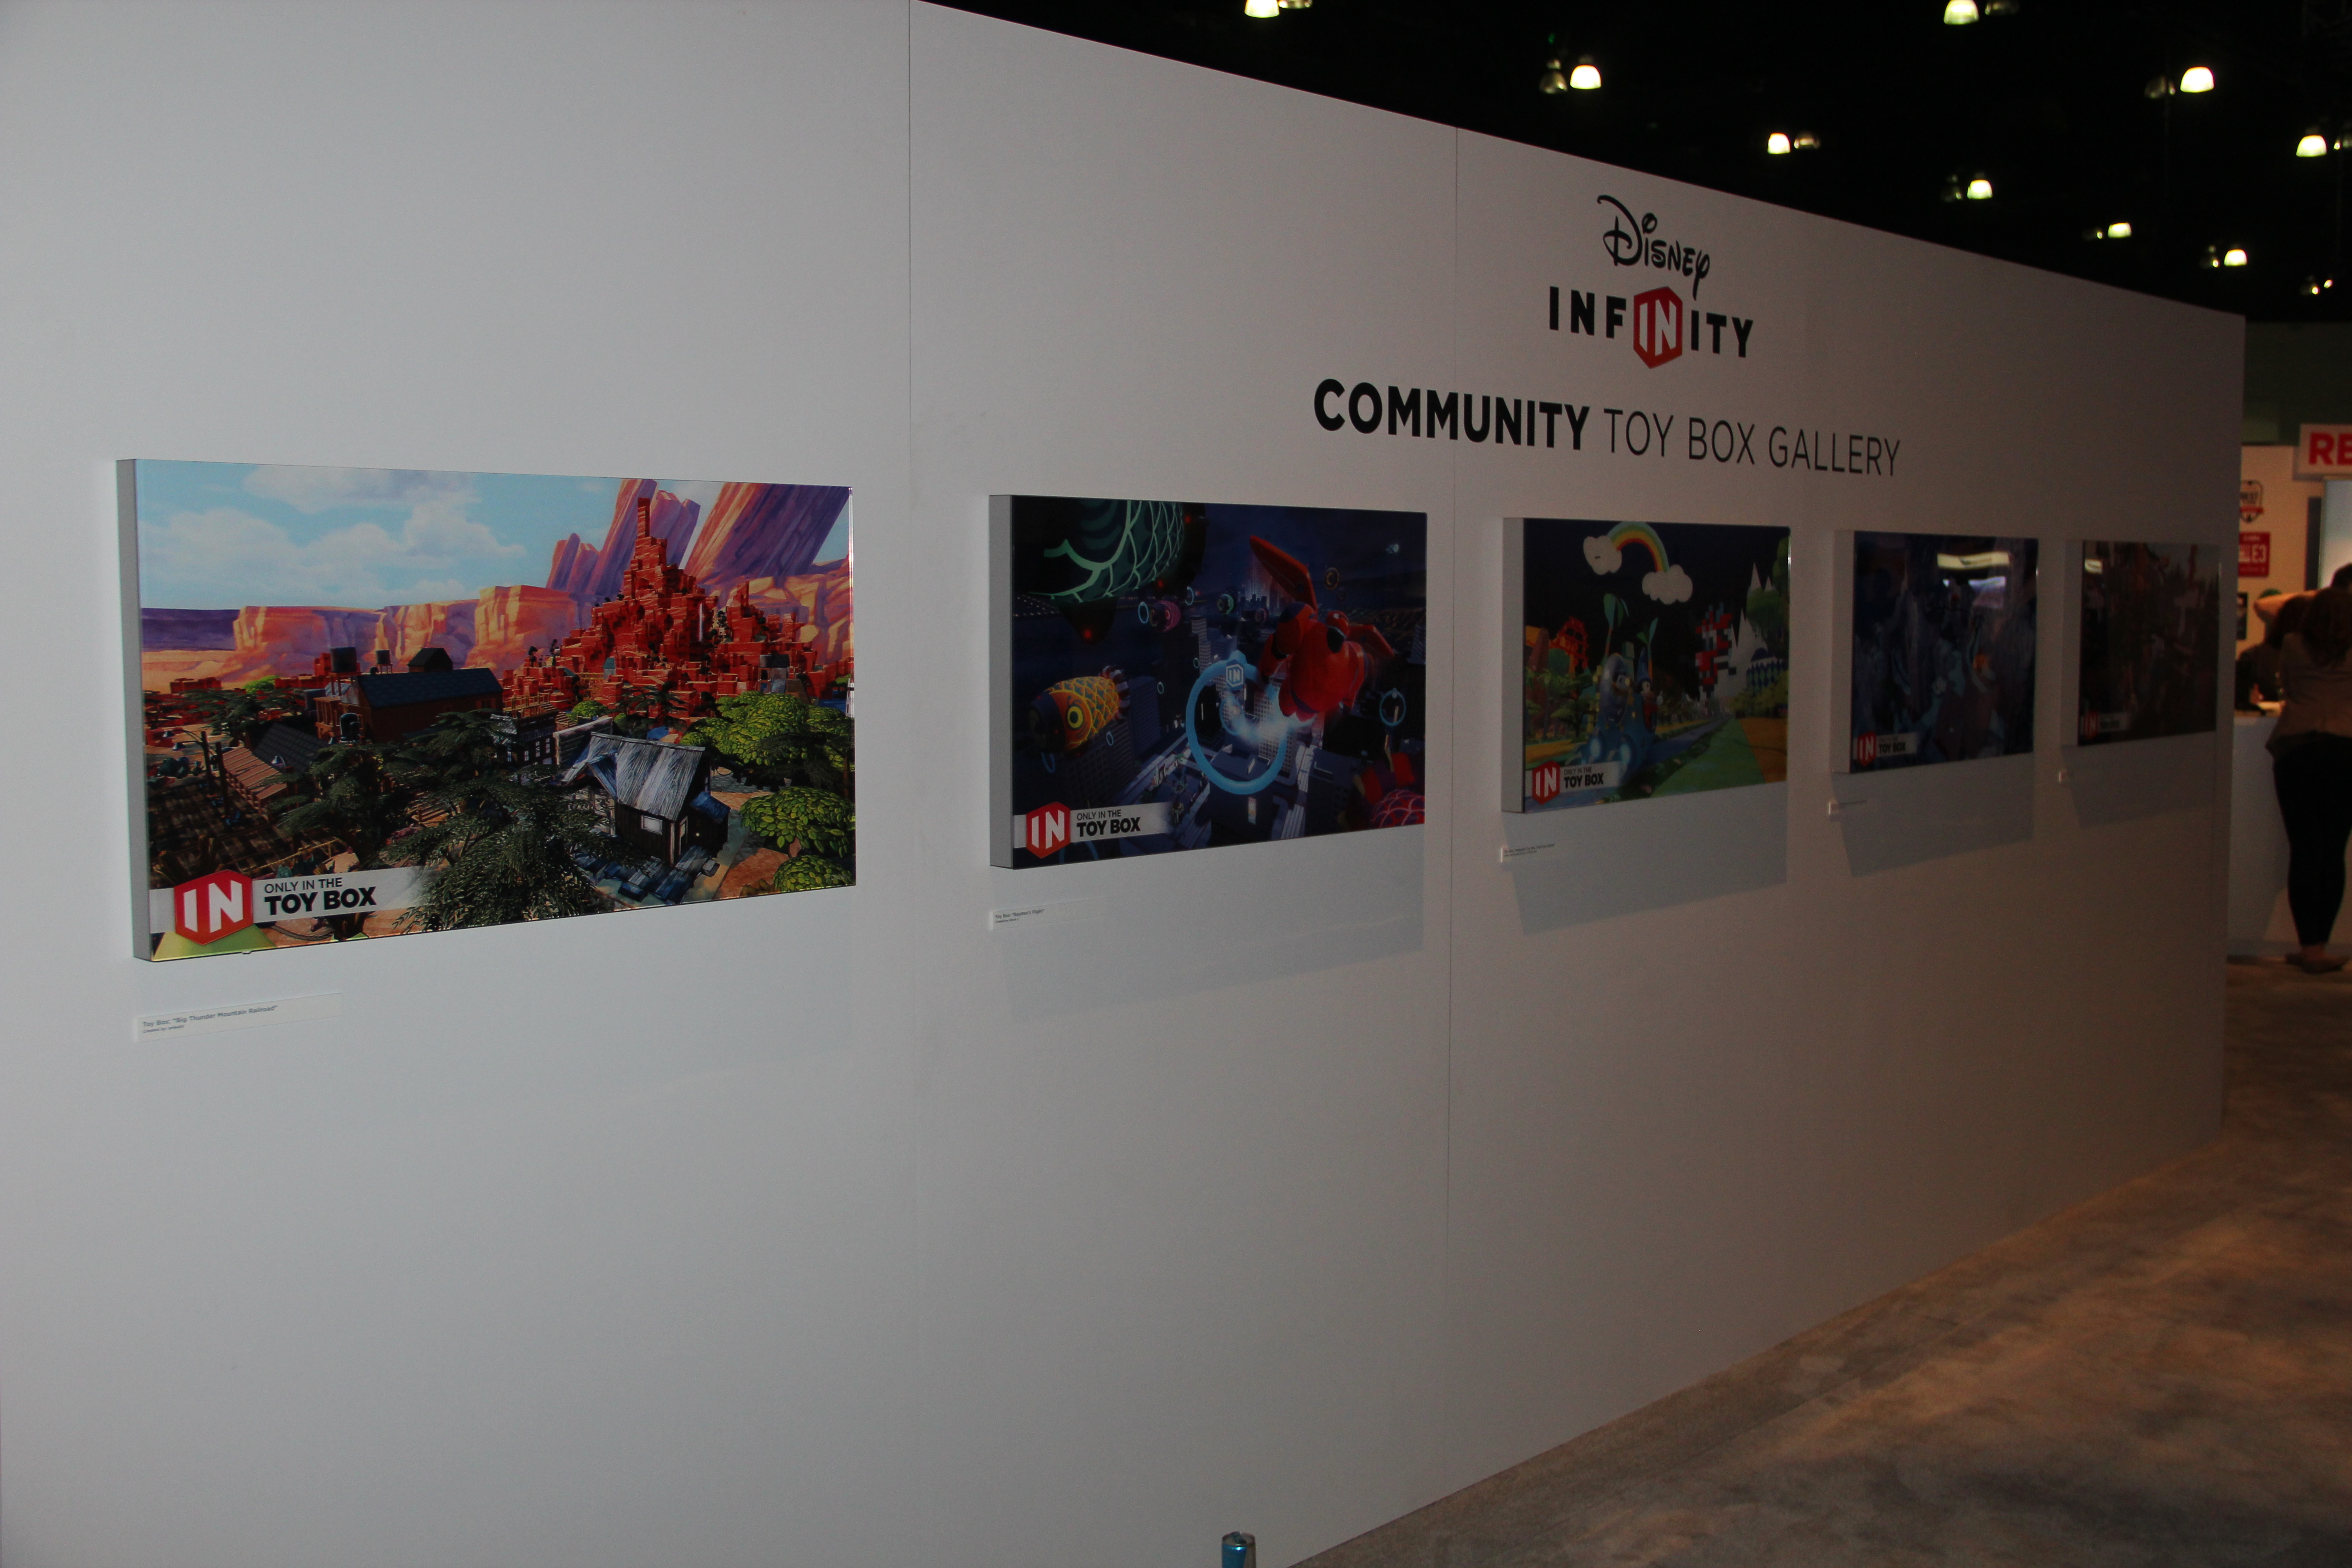 Community Built Toy Box Gallery at Disney Infinity's E3 Booth!